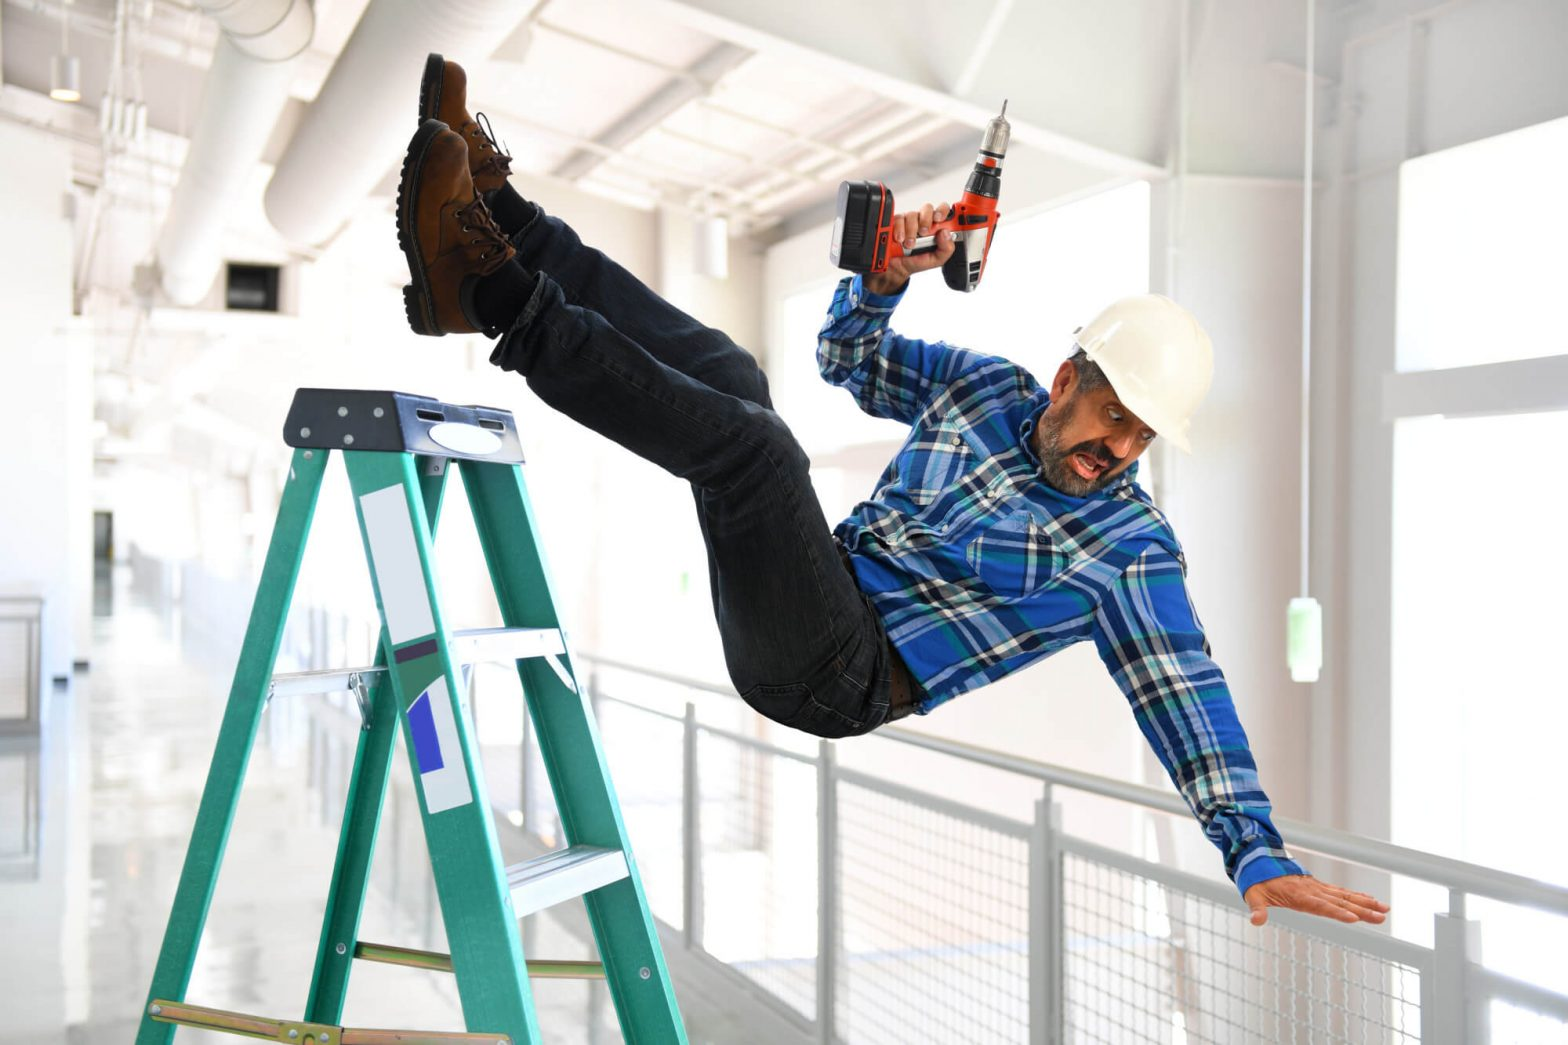 workers comp insurance for self employed